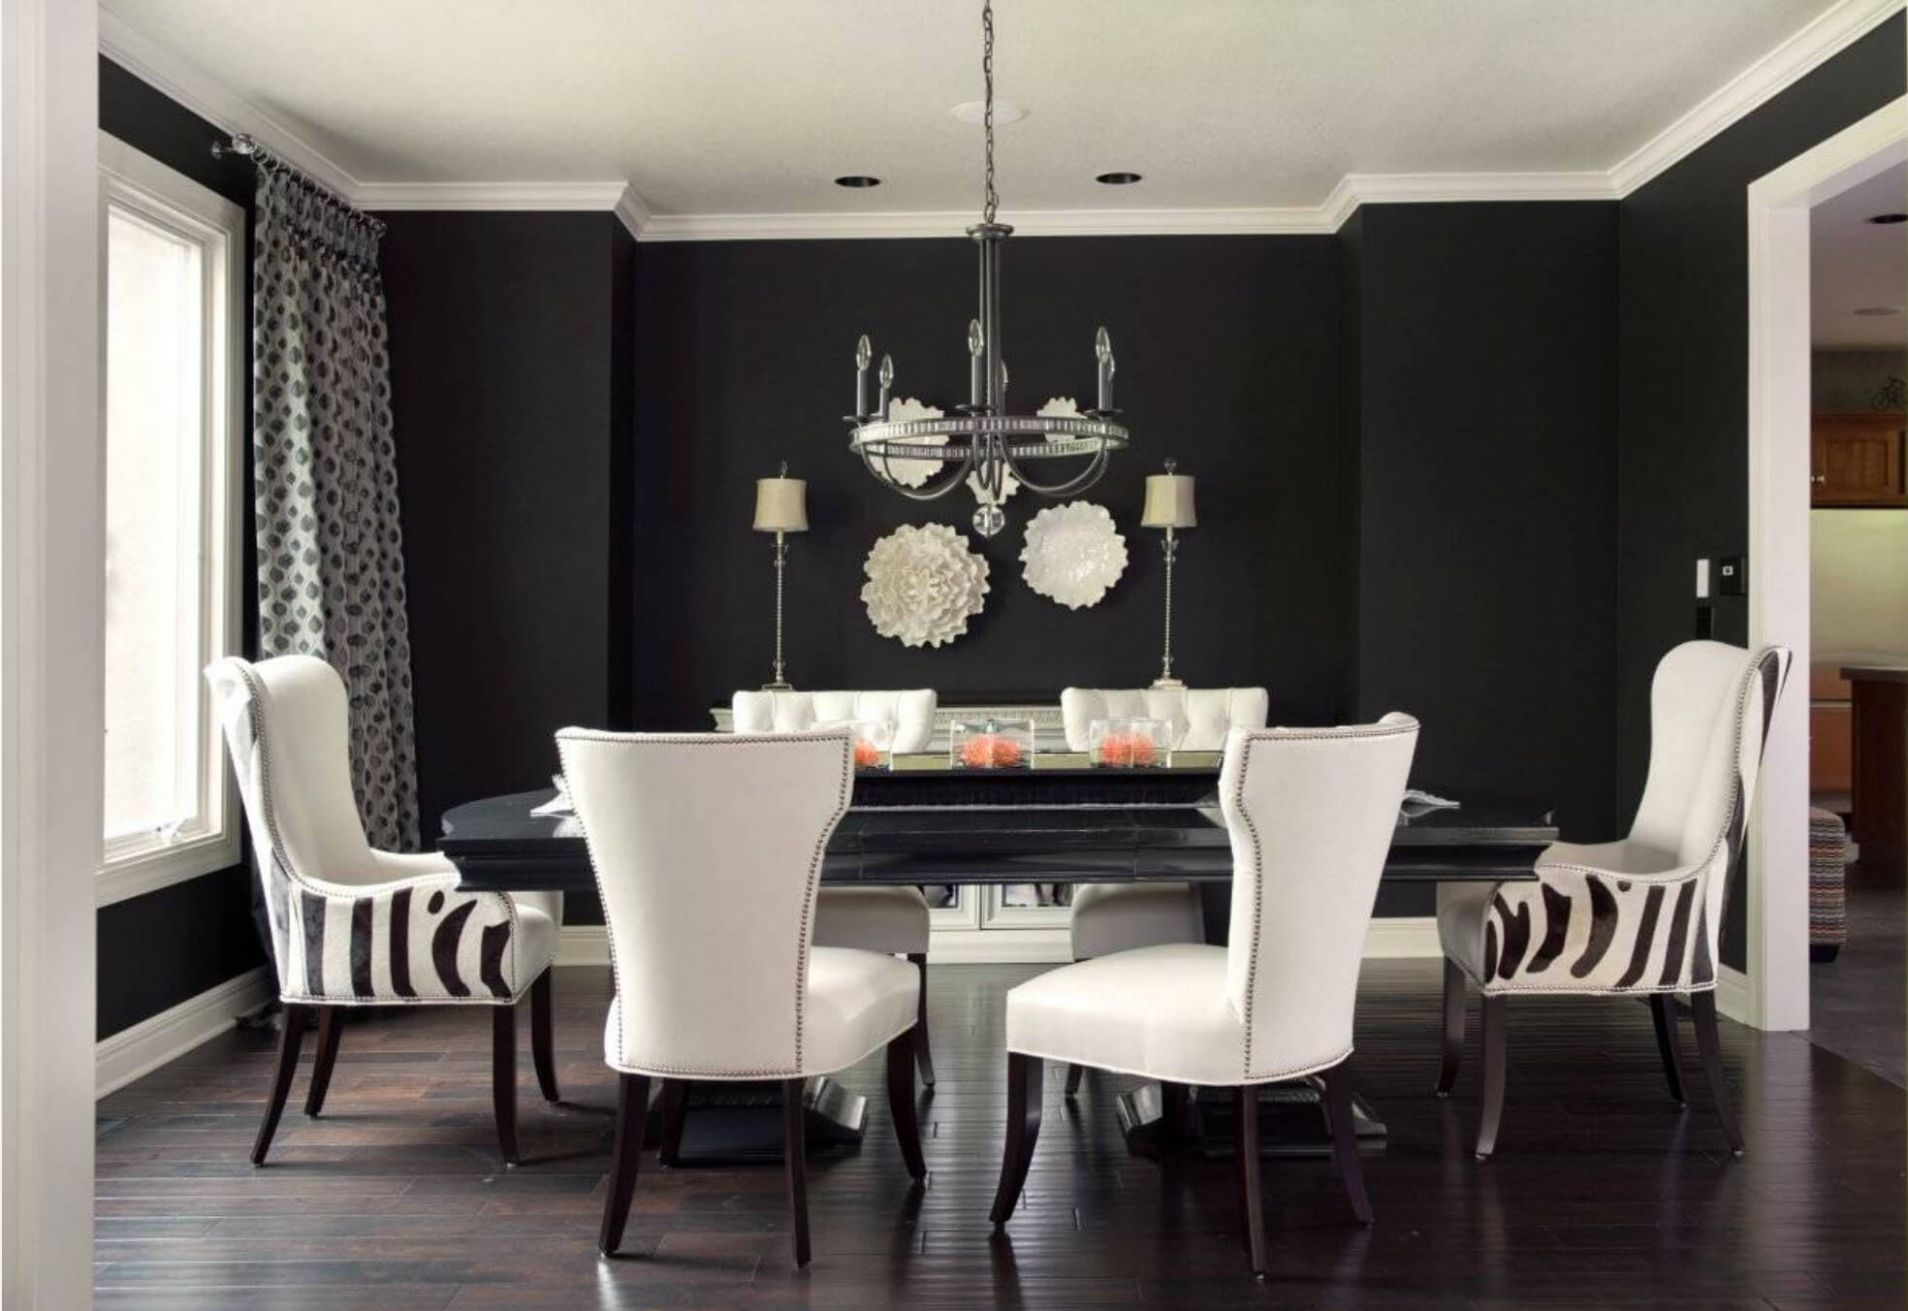 12 Creative Ideas for Dining Room Walls | Freshome.com